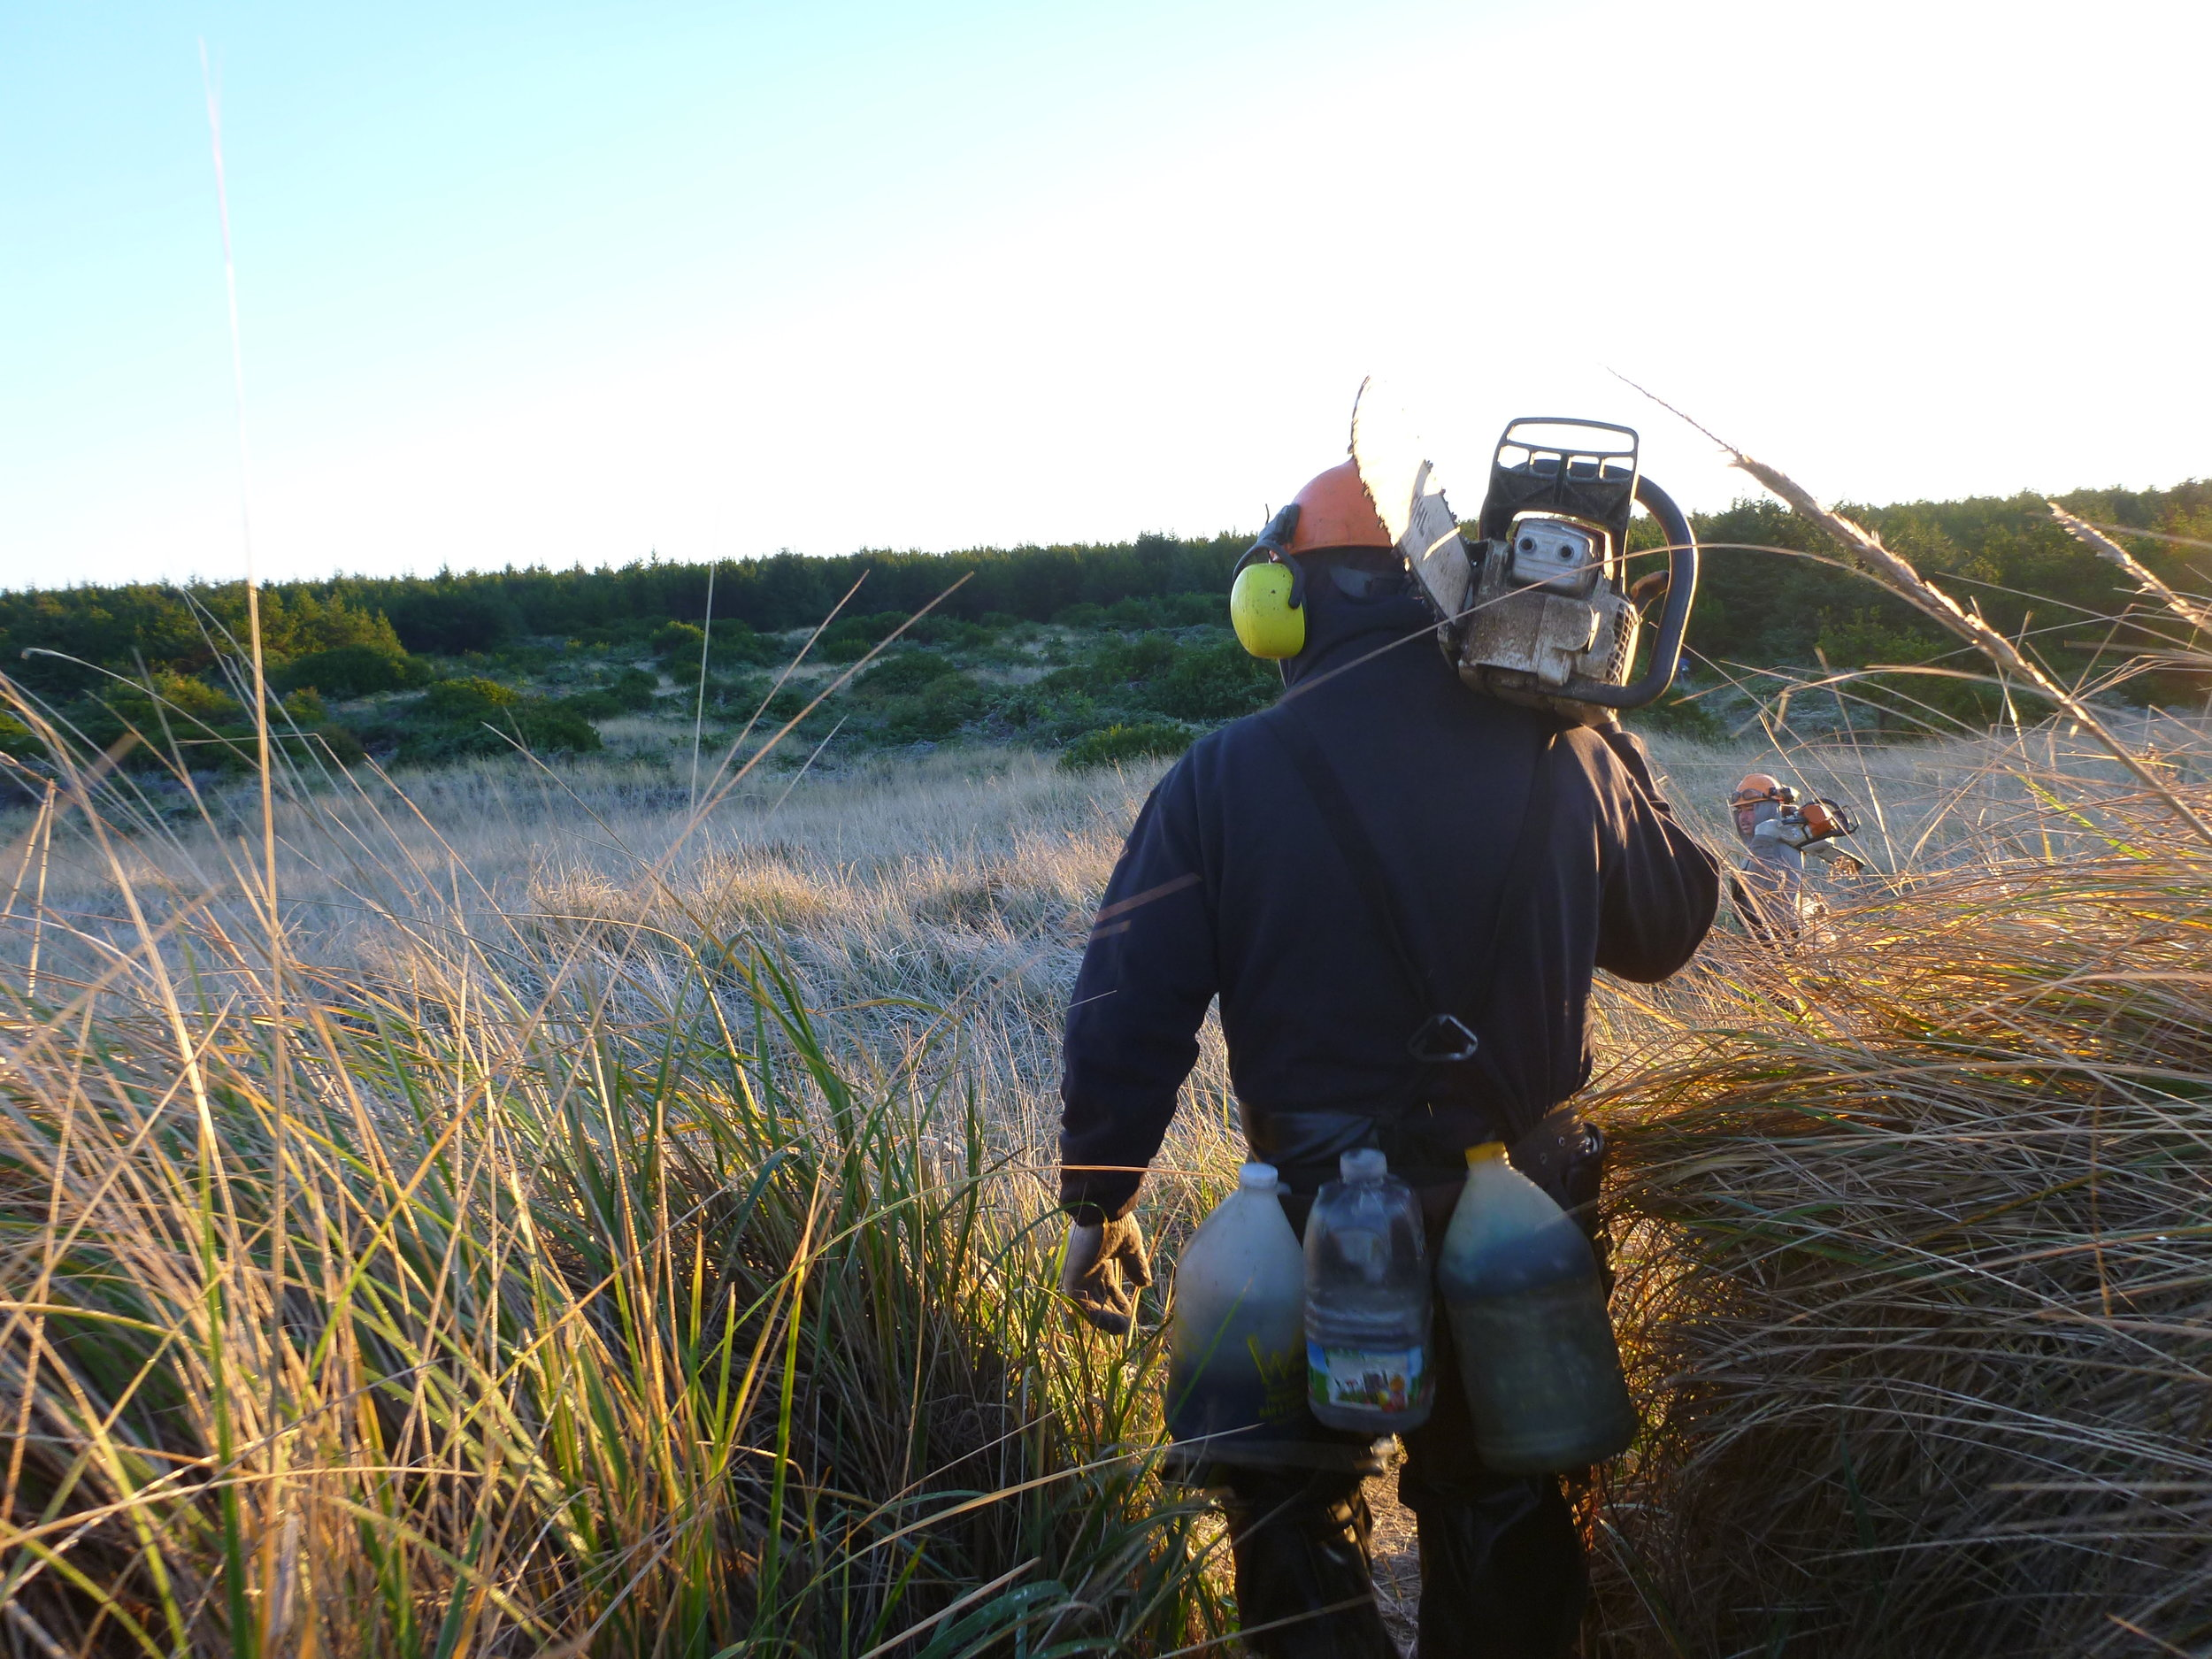 The crew heads into the dunes at Leadbetter Point in the Willapa National Wildlife Refuge.